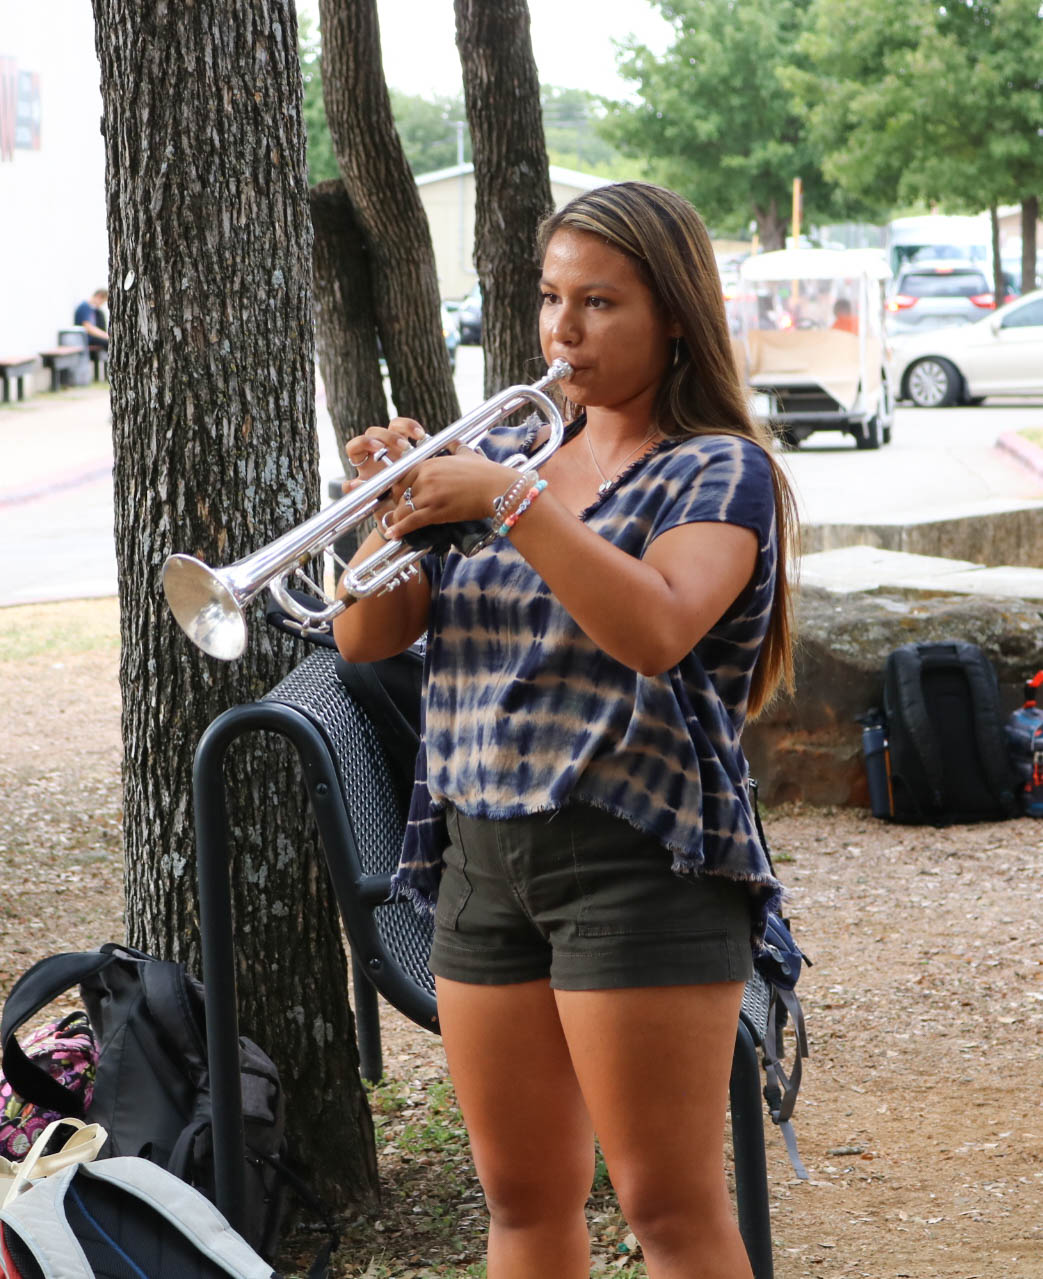 Sophia+Castaneda+%2720+plays+Taps+on+the+trumpet.+Even+though+she%27s+not+in+JROTC%2C+she+was+asked+to+play+for+the+ceremony.+%22I%27m+really+happy+I+could+be+a+part+of+it+and+it+was+such+an+honor%2C%22+Castaneda+%2720+said.